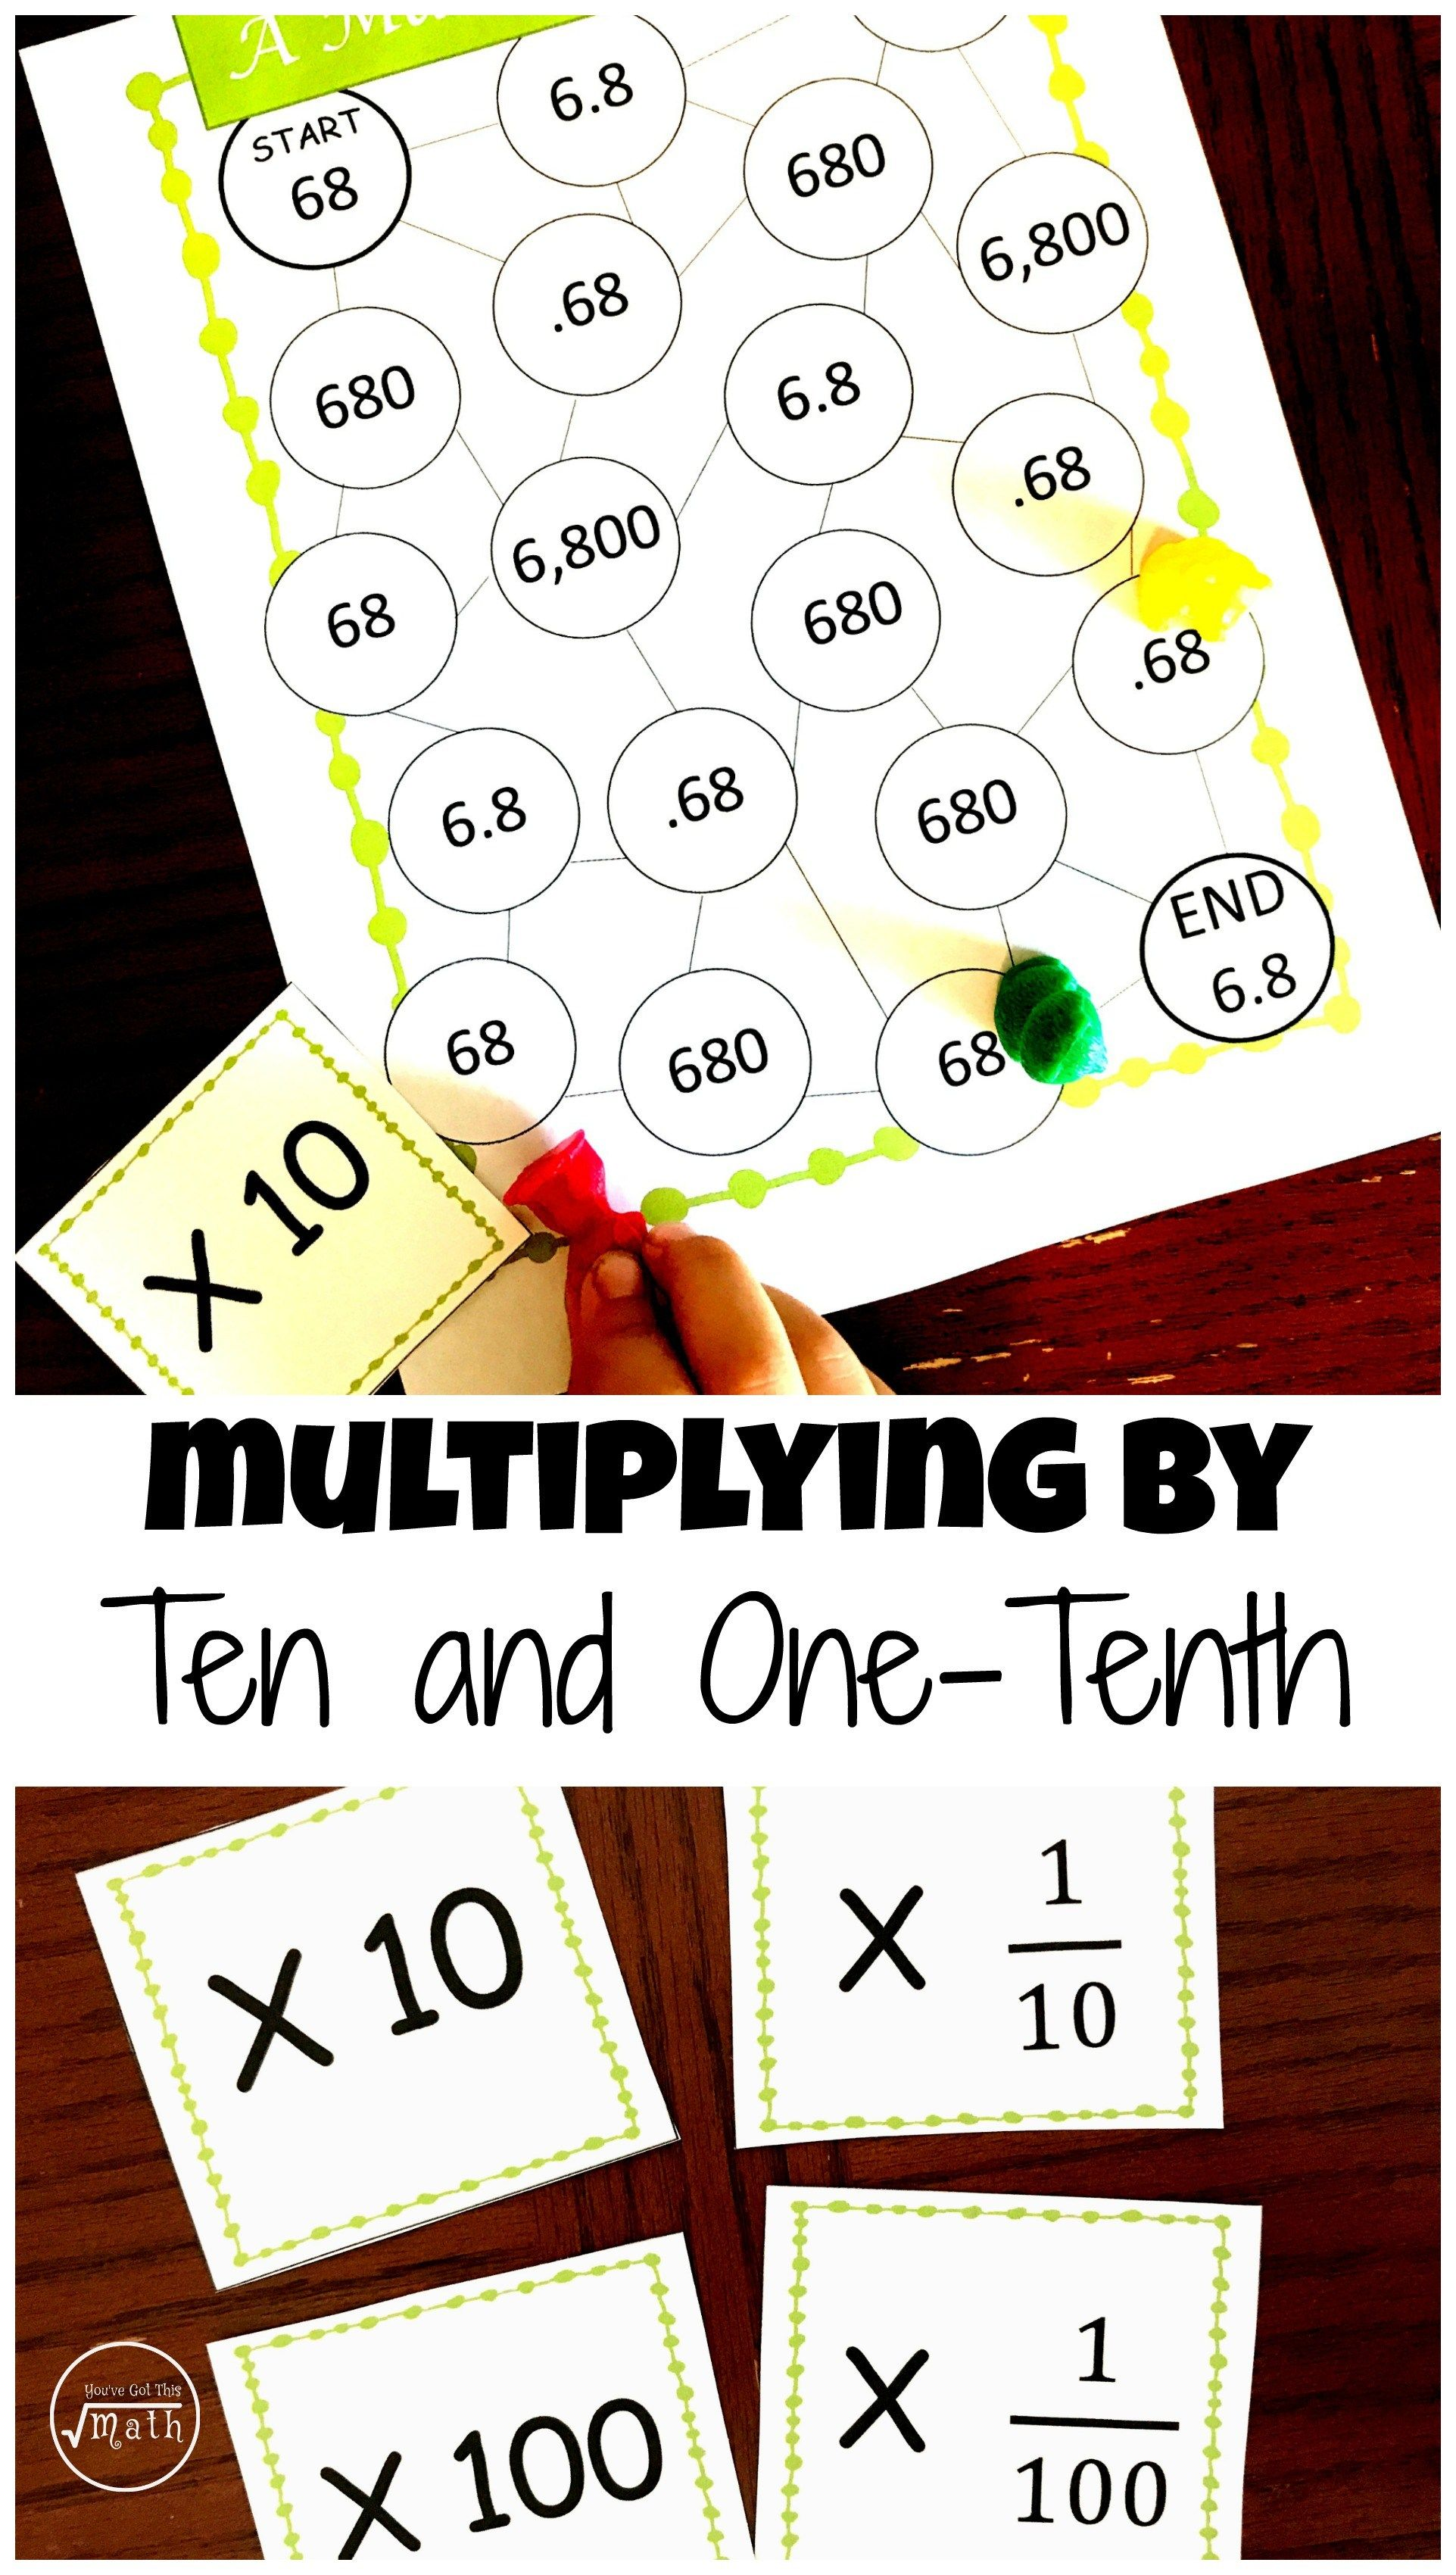 Here S A Free Game To Practice Multiplying By 10 And 10